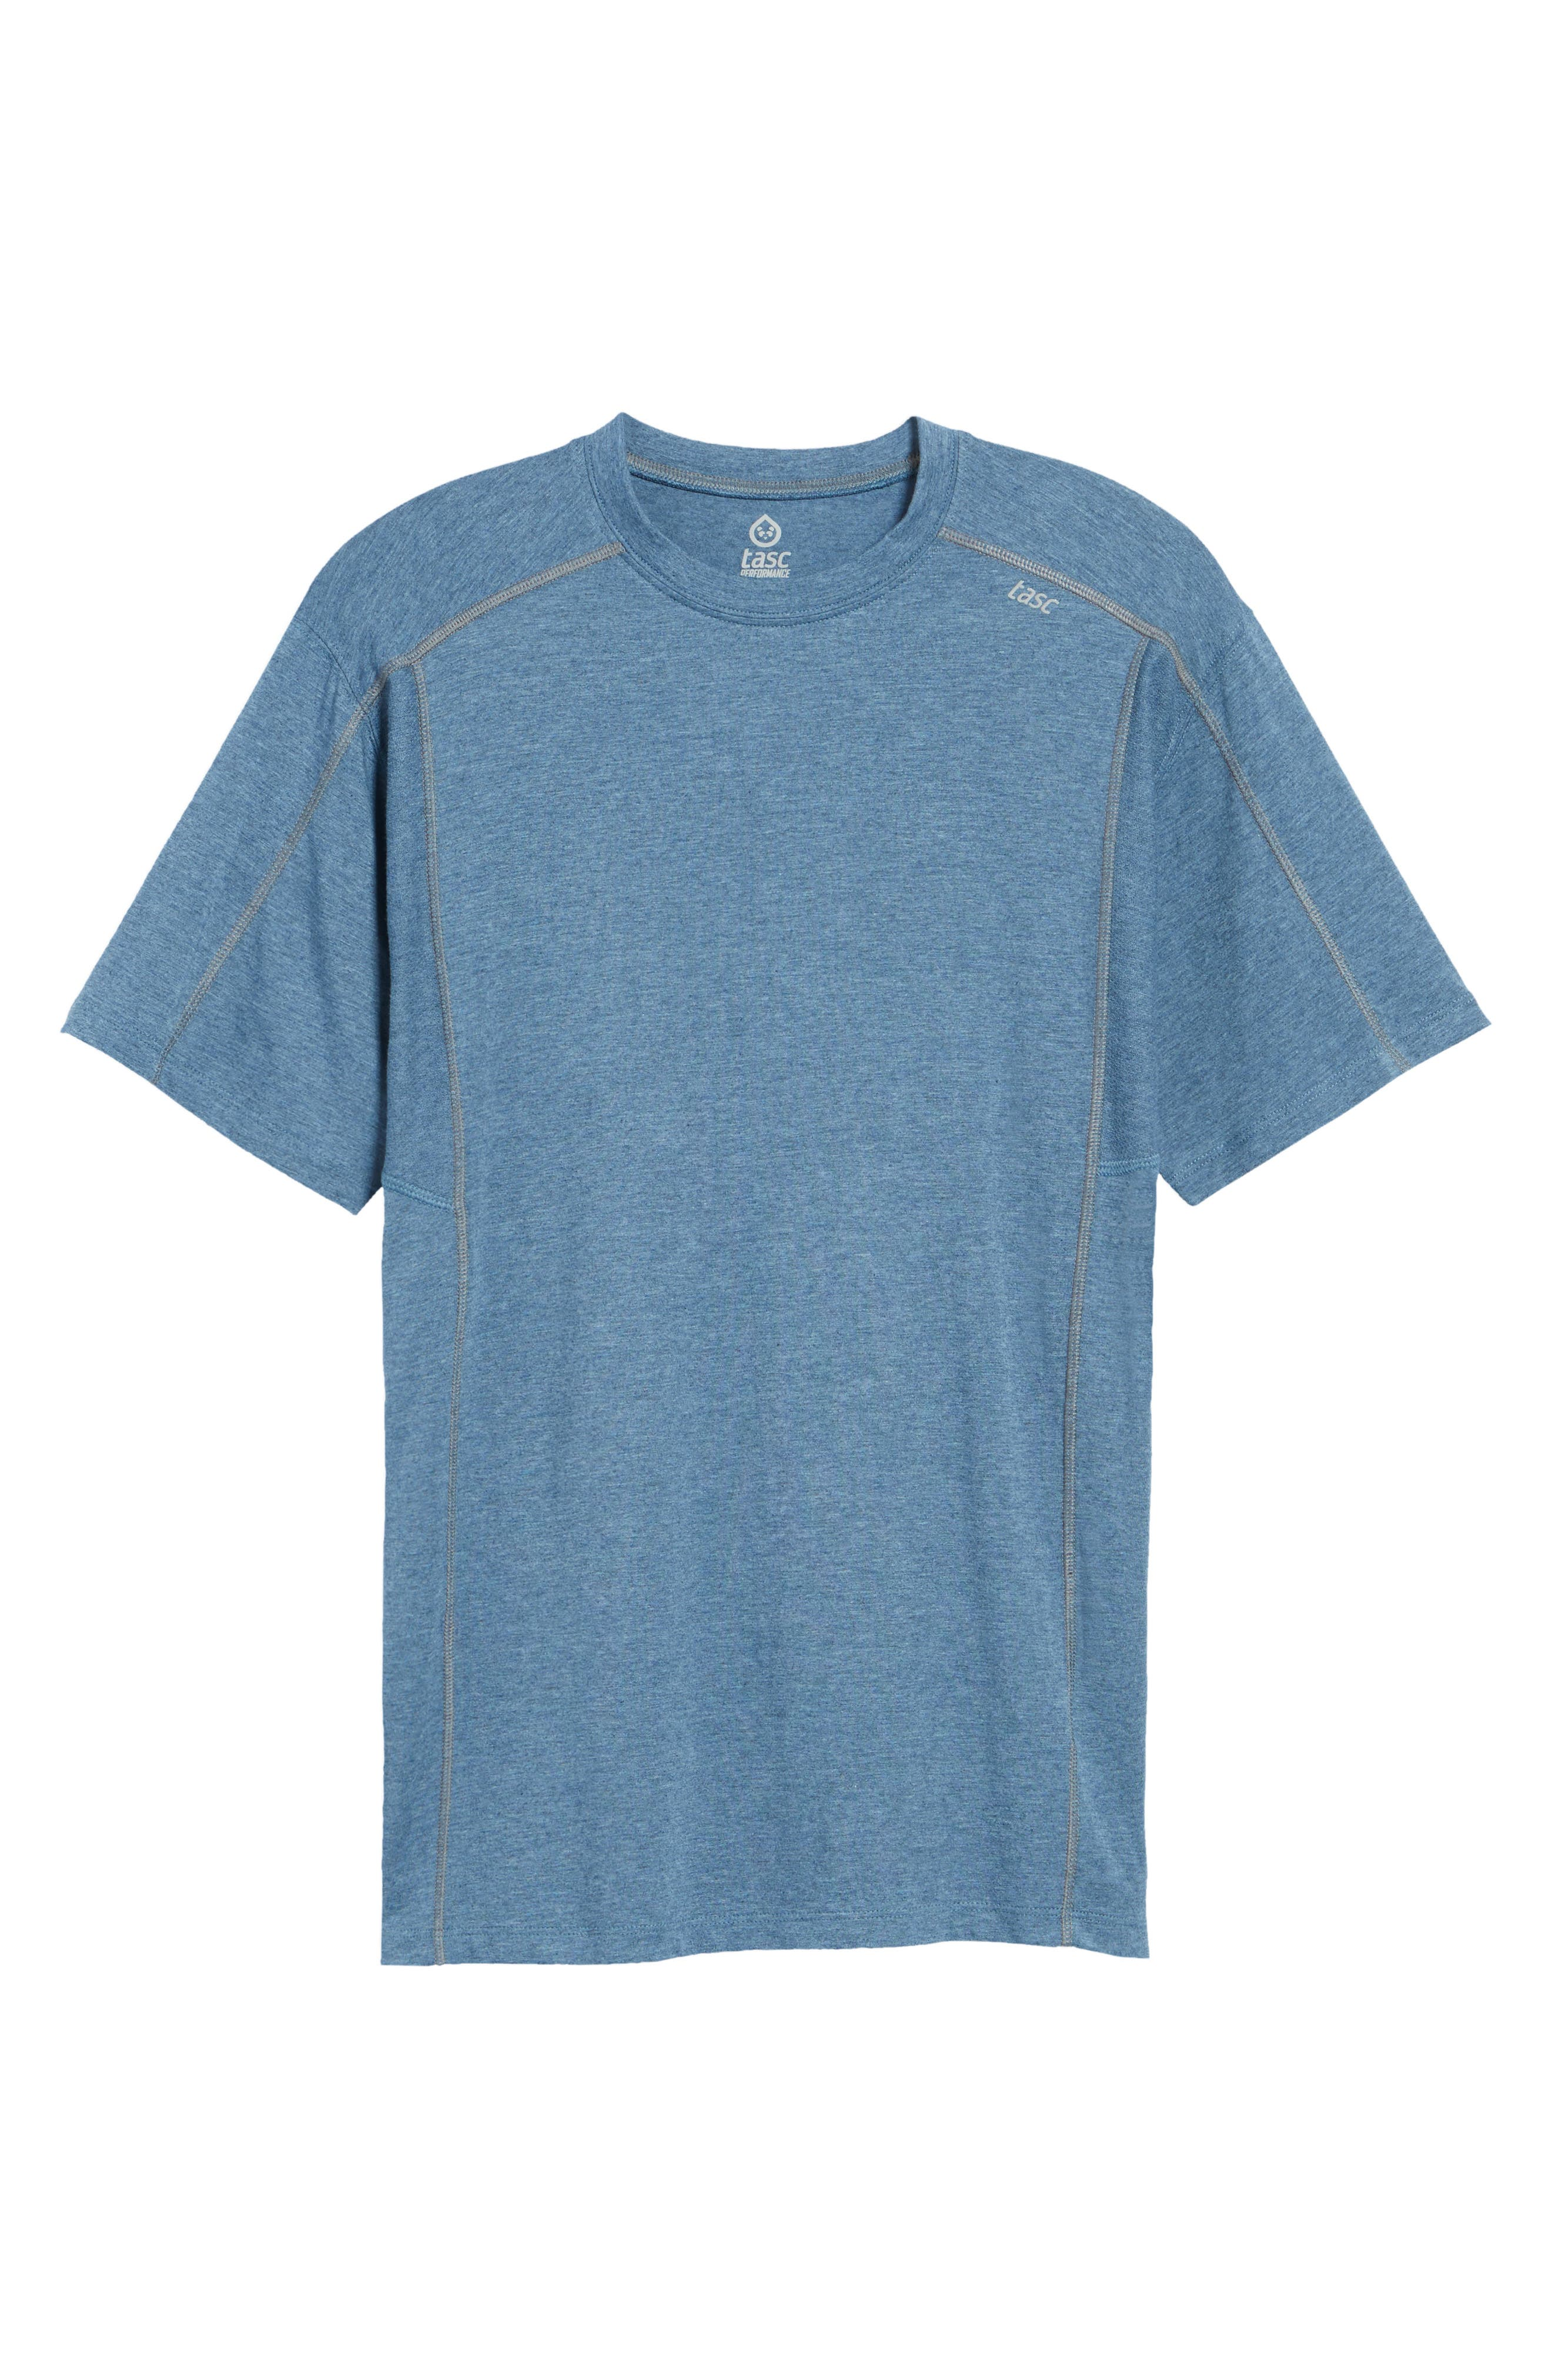 Charge Semi-Fitted T-Shirt,                             Alternate thumbnail 6, color,                             Indigo Heather